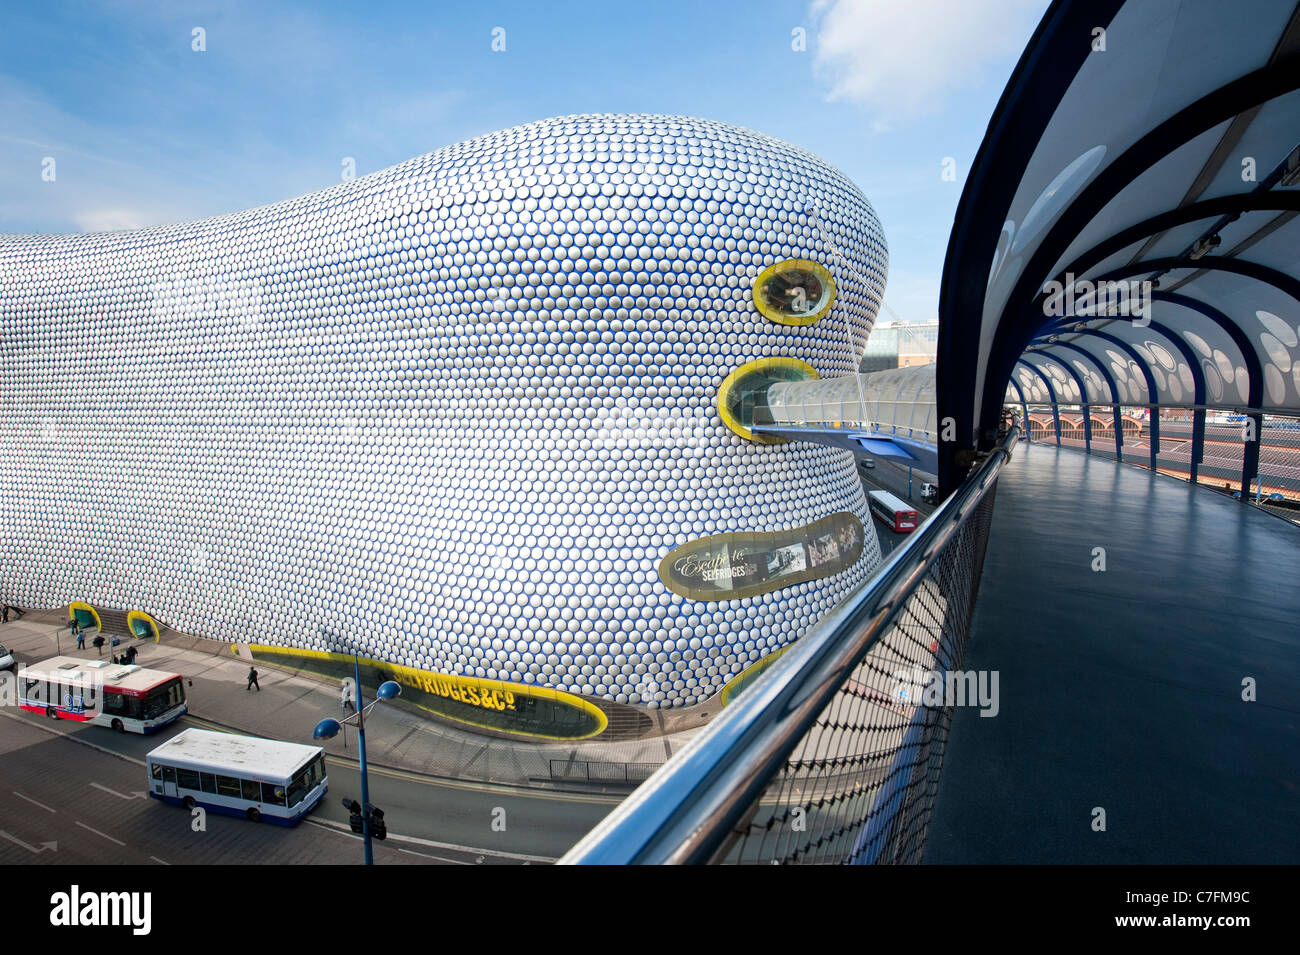 Bridge to Selfridges at the Bull Ring shopping center, Birmingham, UK - Stock Image